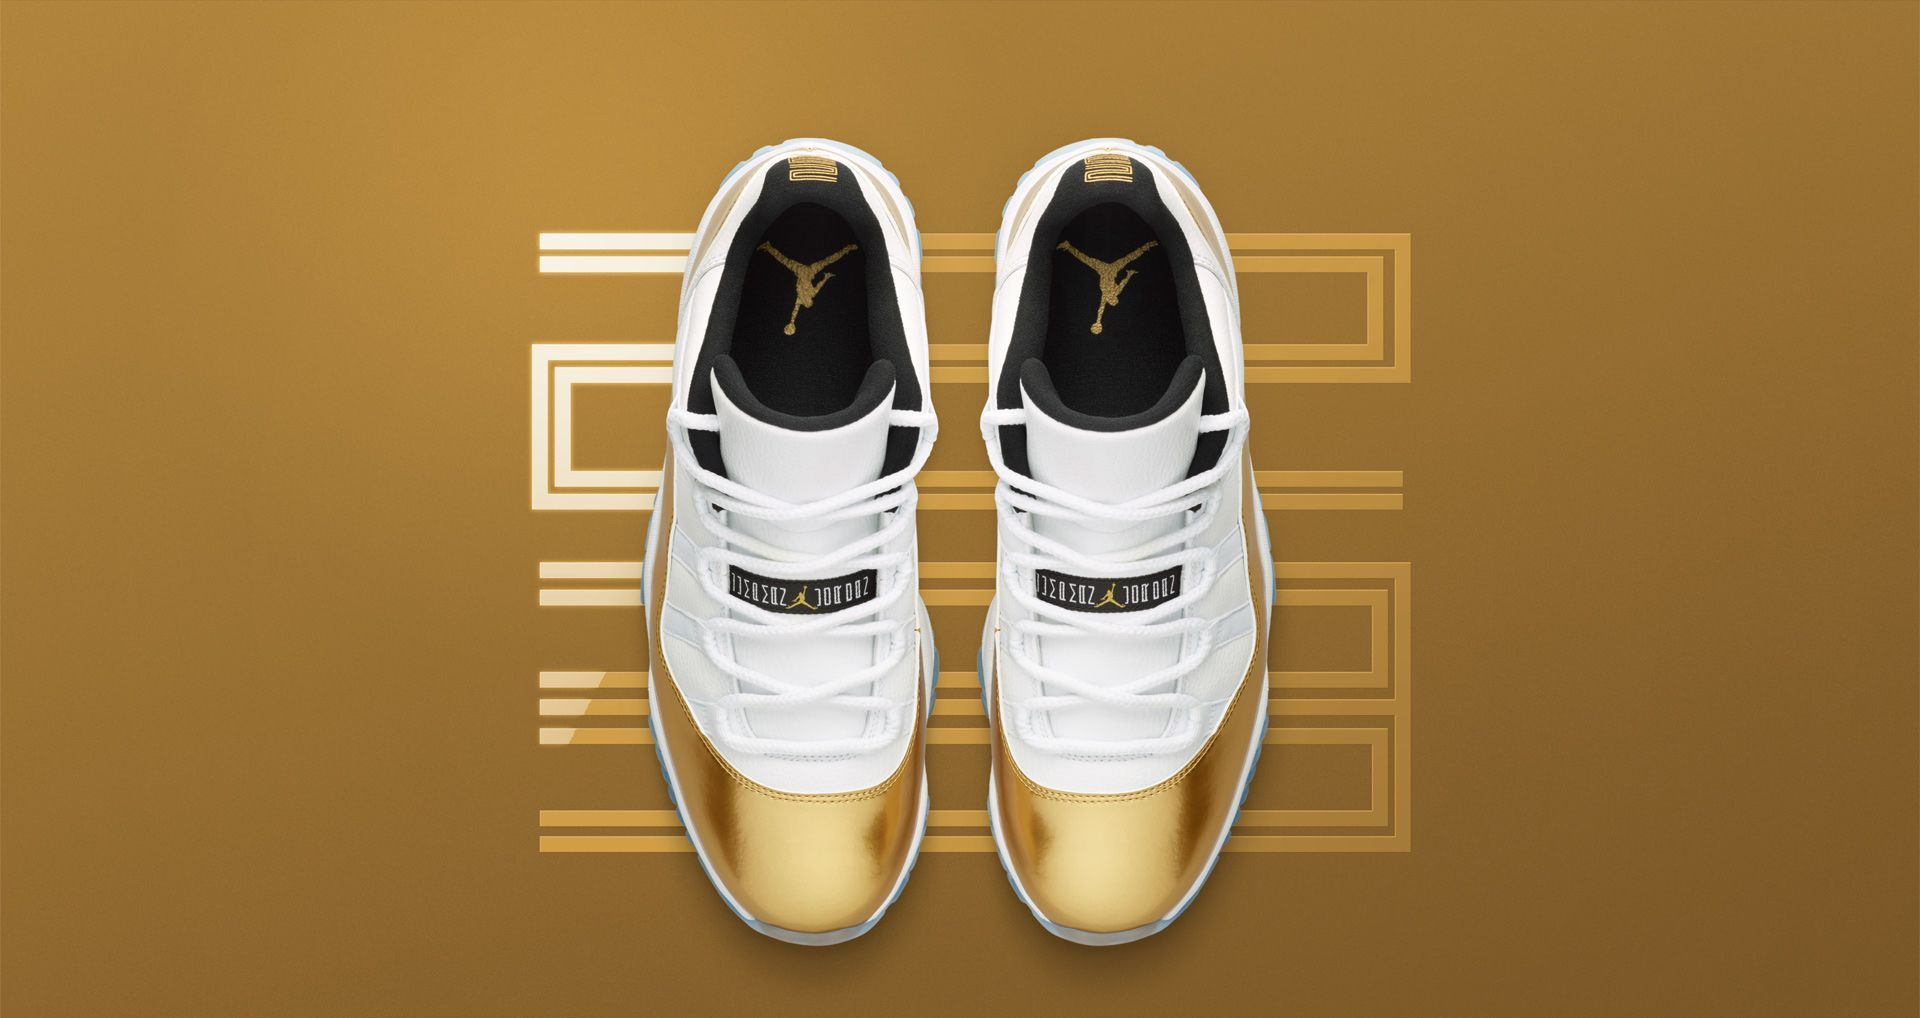 0c076038502 Air Jordan 11 Retro Low 'White & Metallic Gold' Release Date. Nike⁠+ ...